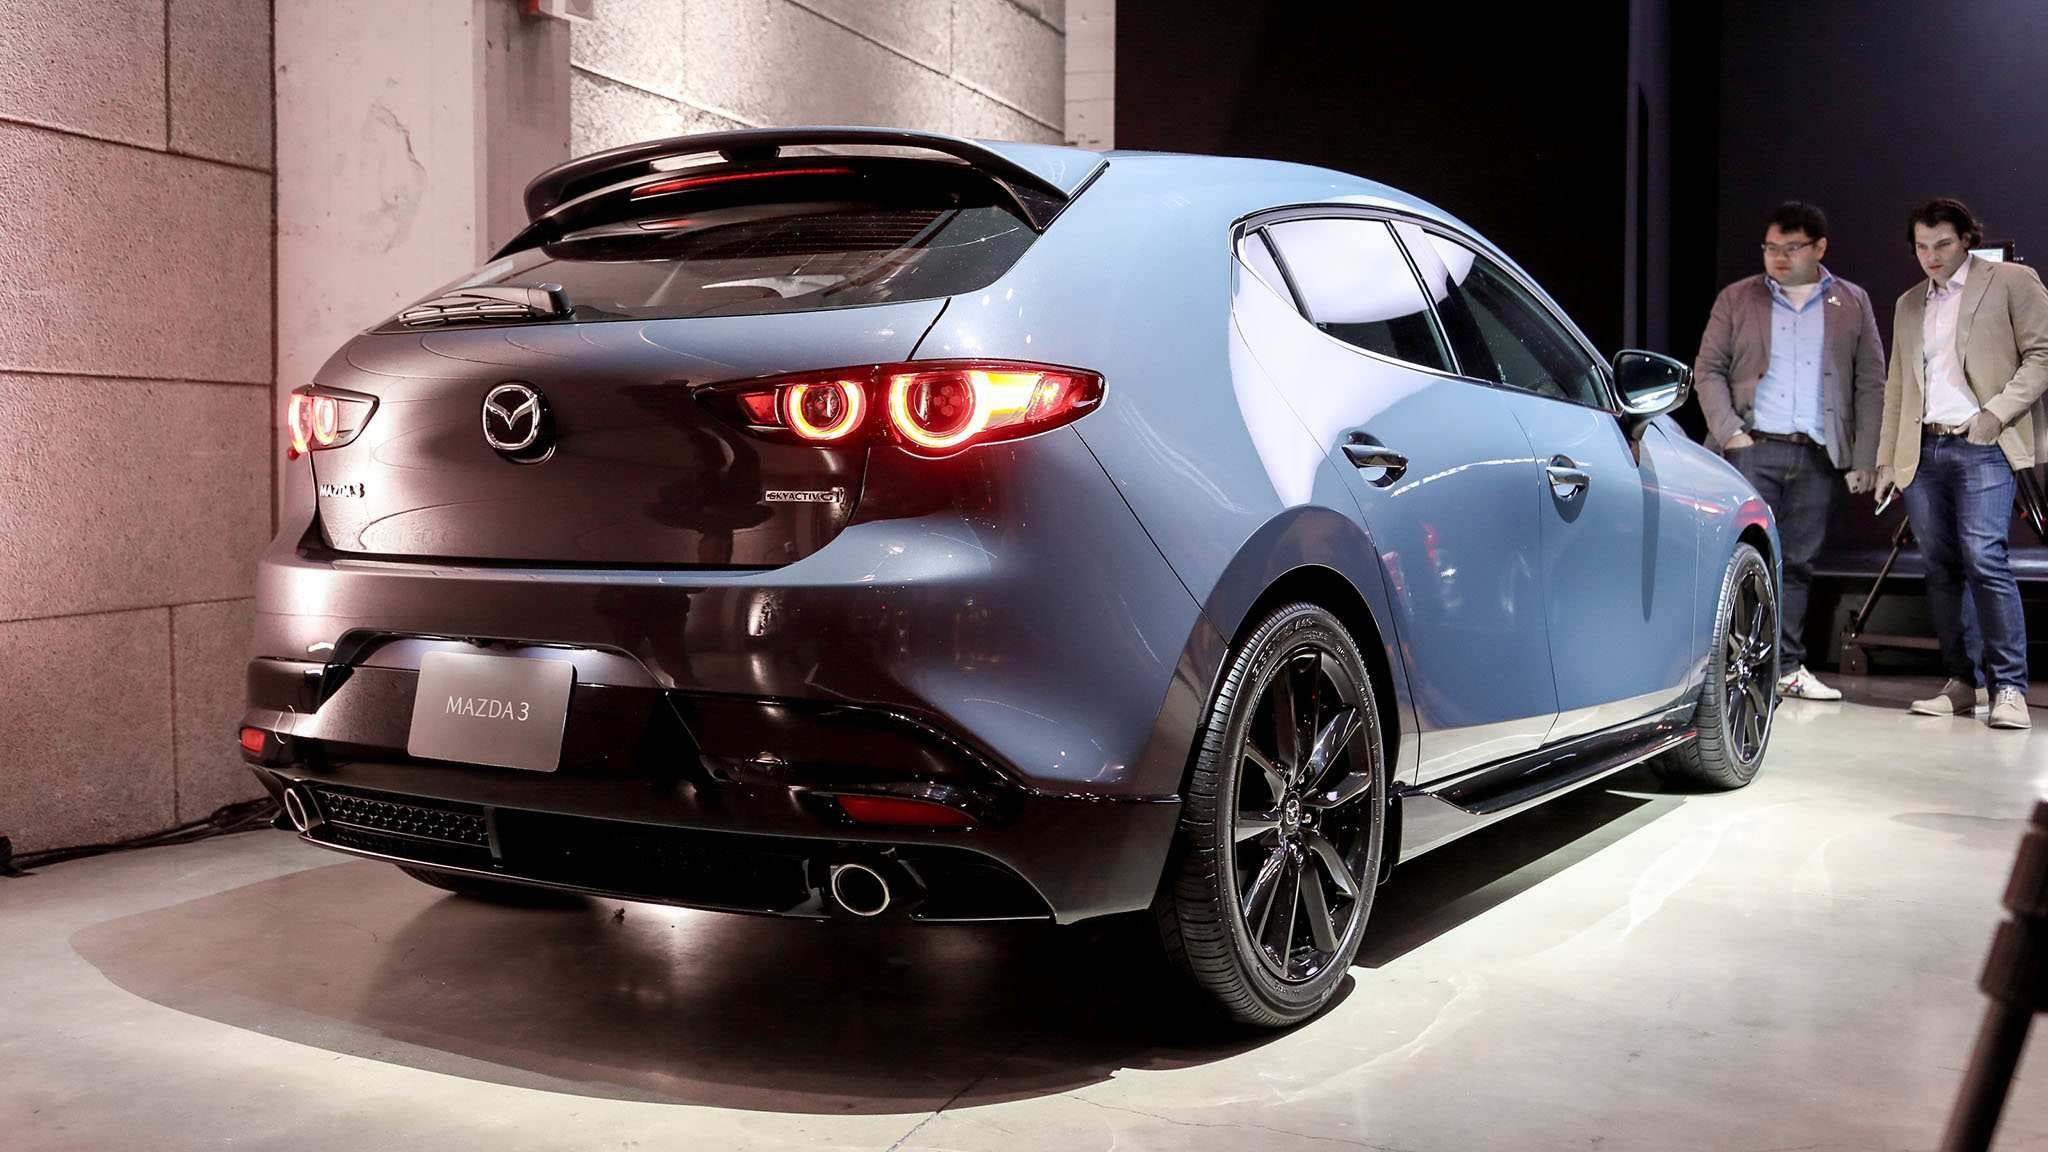 78 The Best Mazda 2019 Hatch Specs Release Date by Best Mazda 2019 Hatch Specs